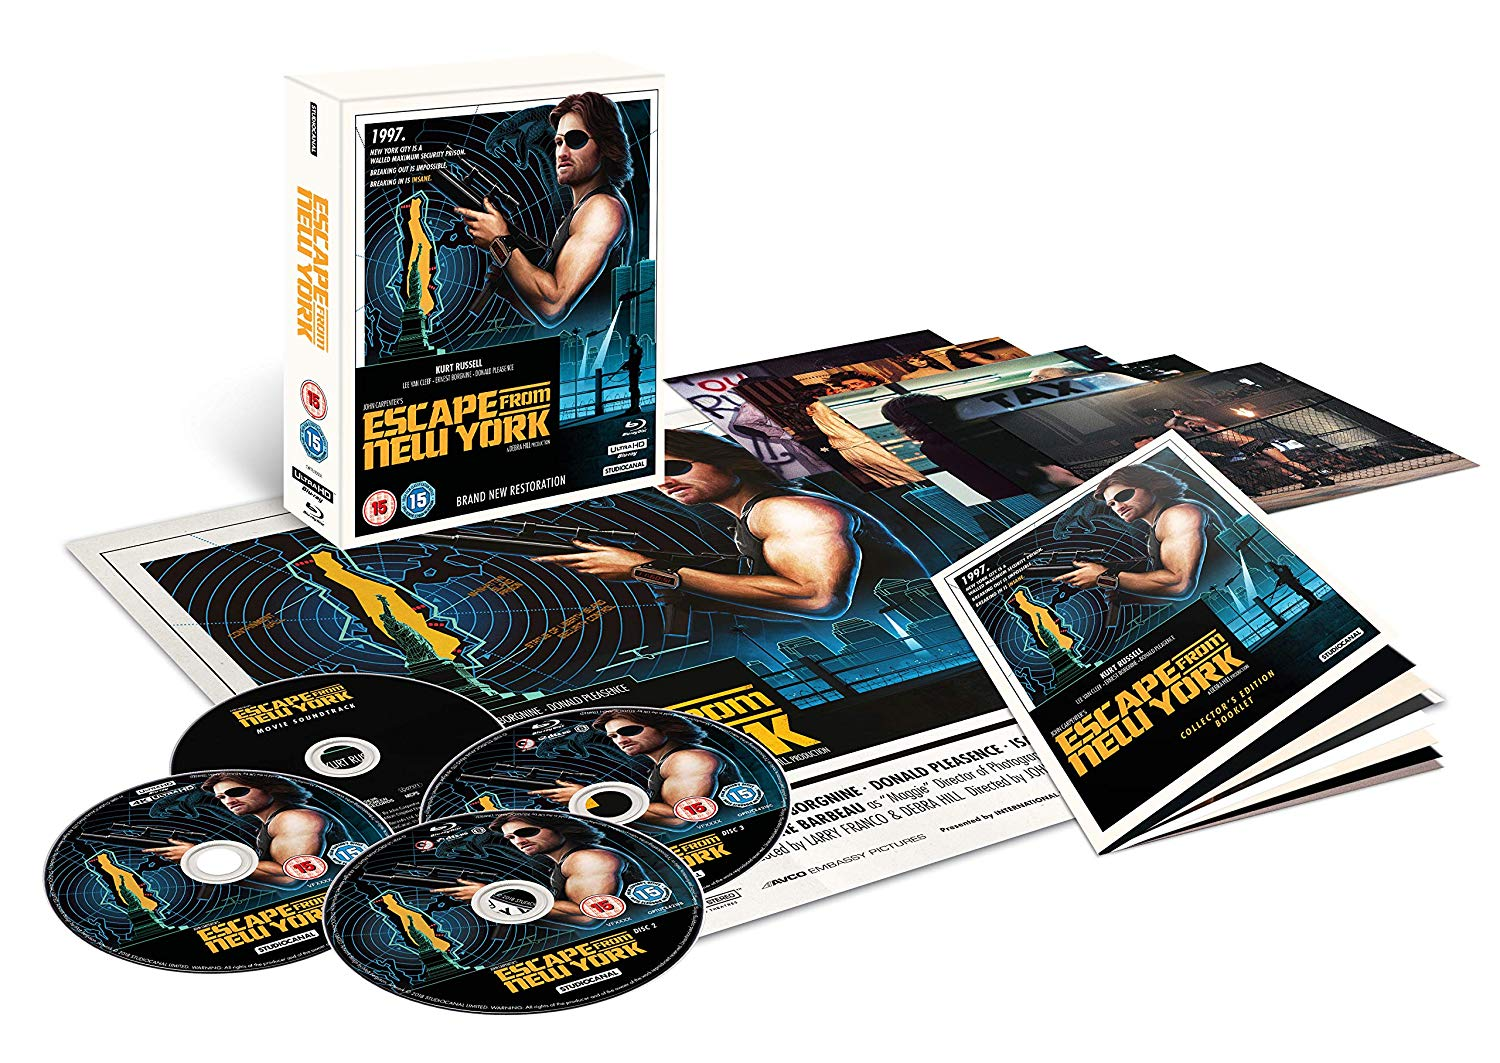 Escape from New York 4K UK Blu-Ray Full